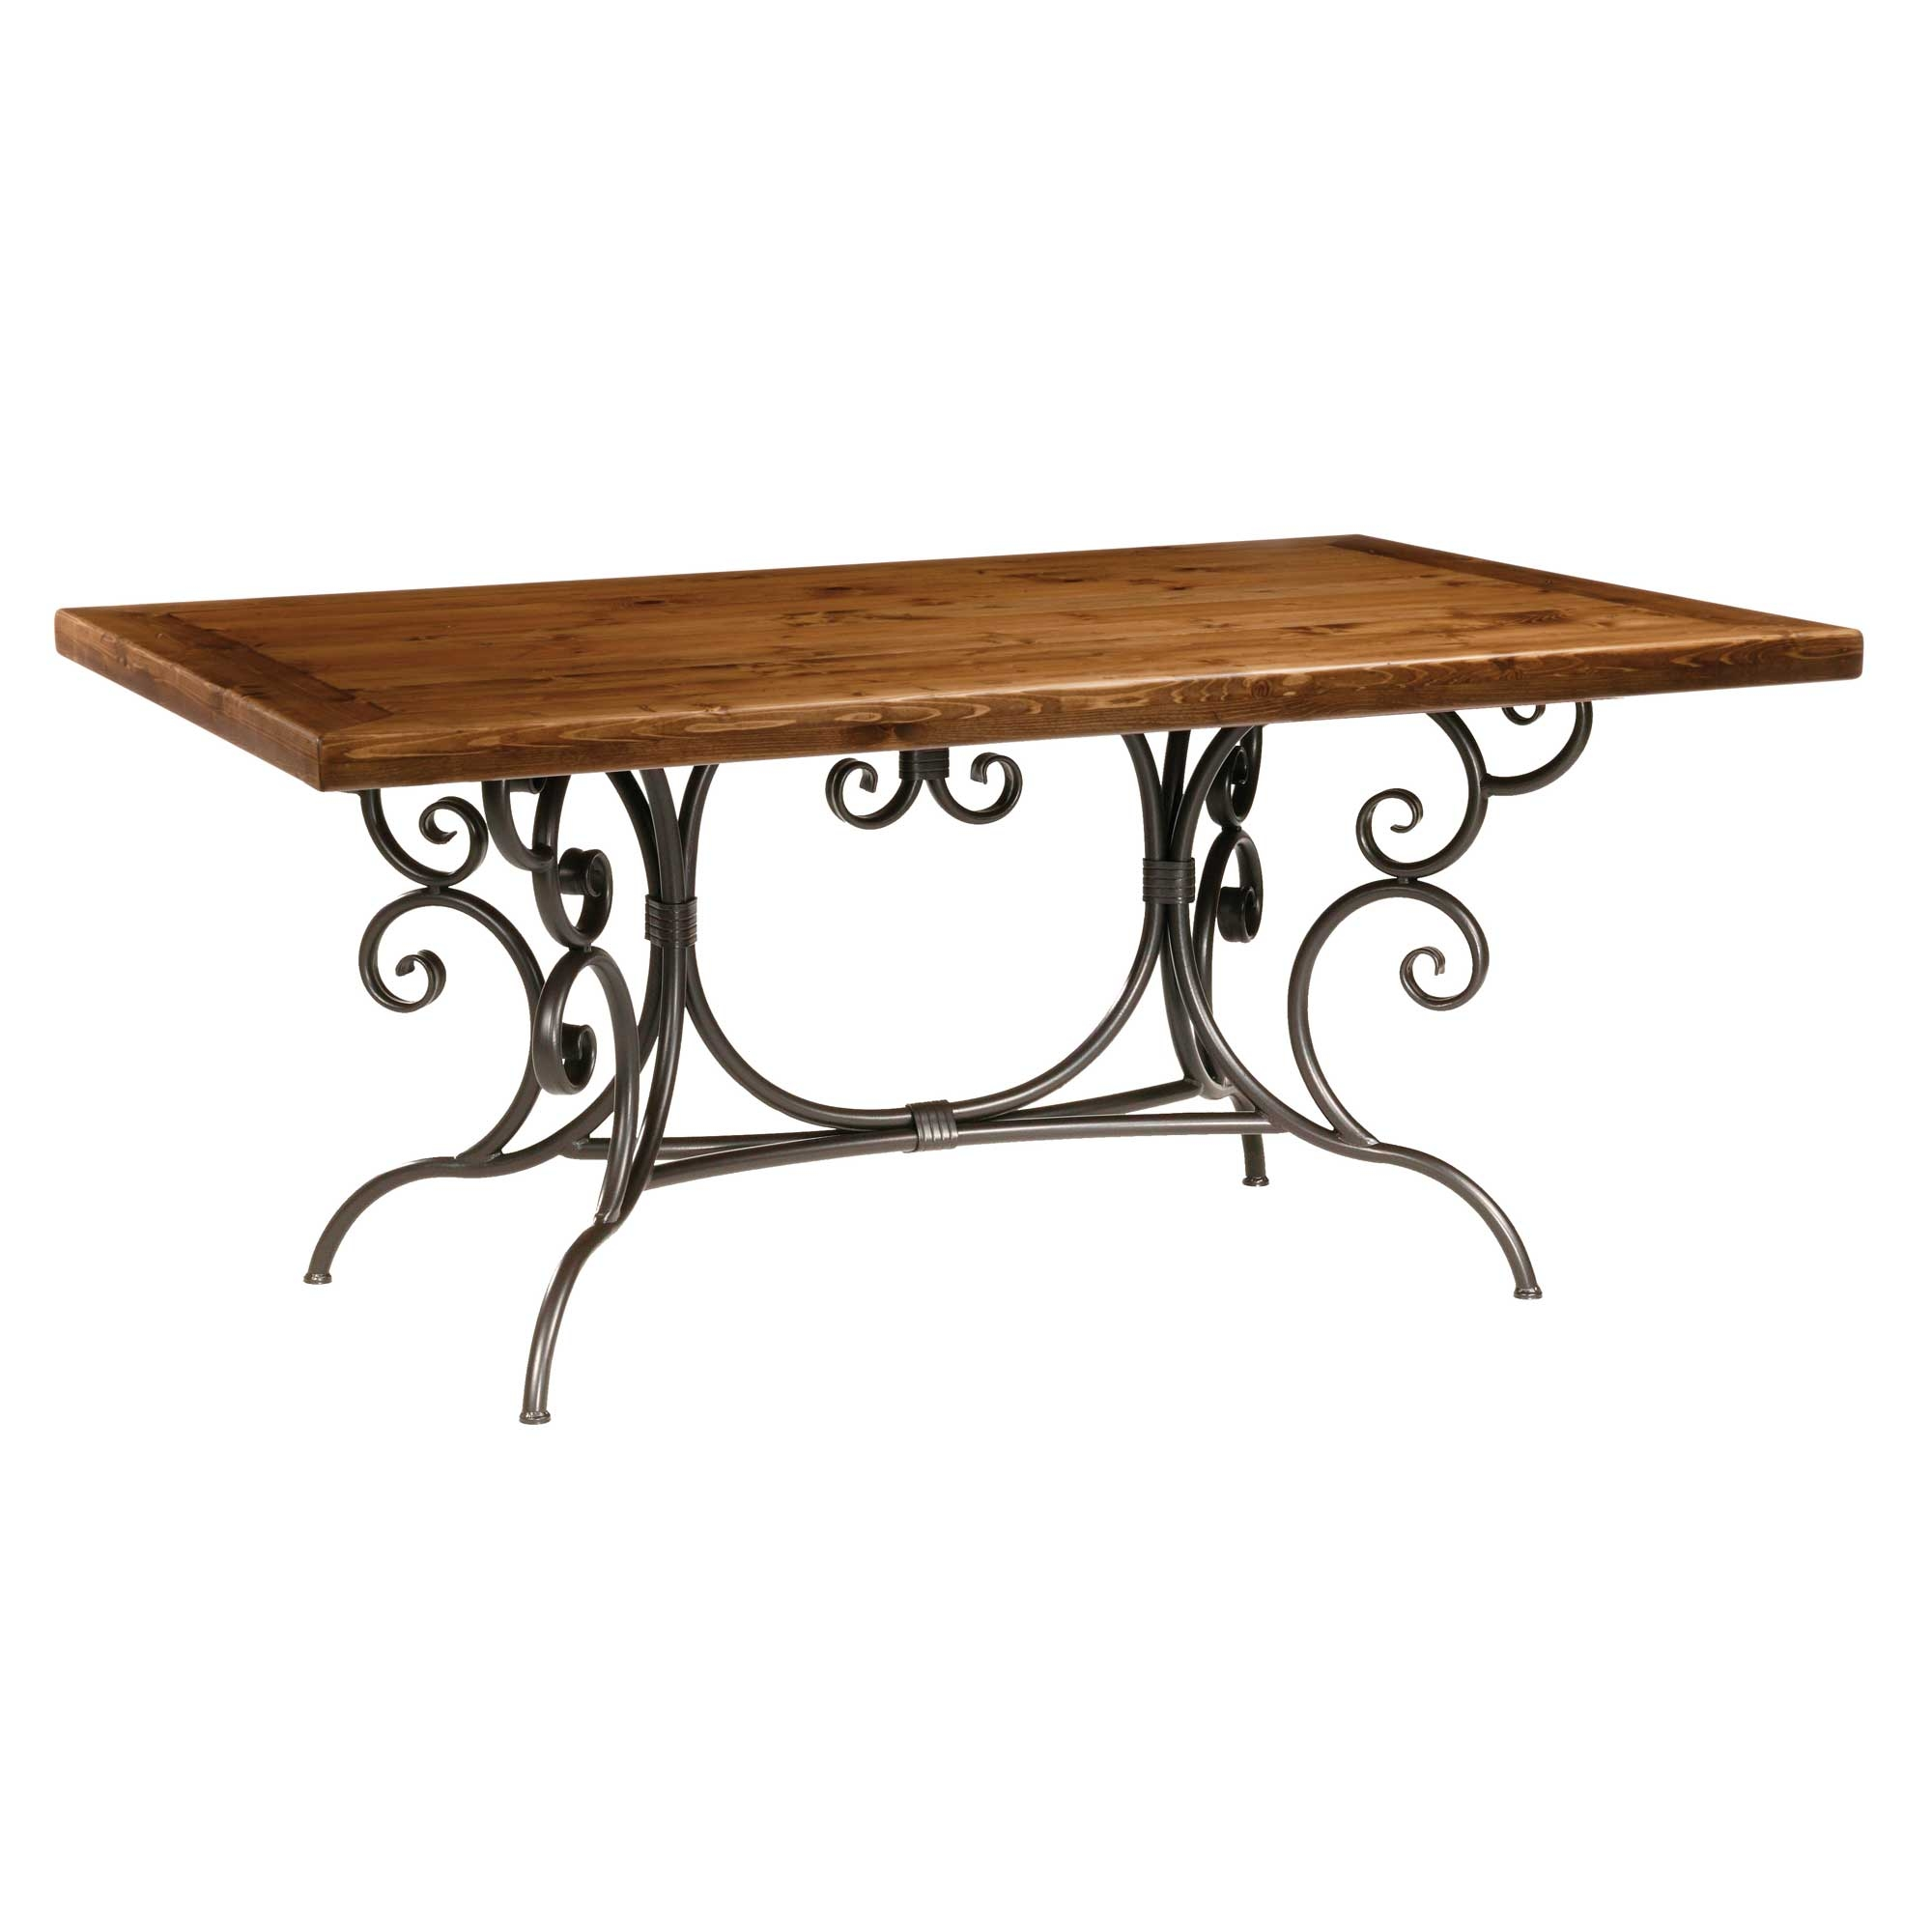 Dining table wood dining table wrought iron base for Dining table base